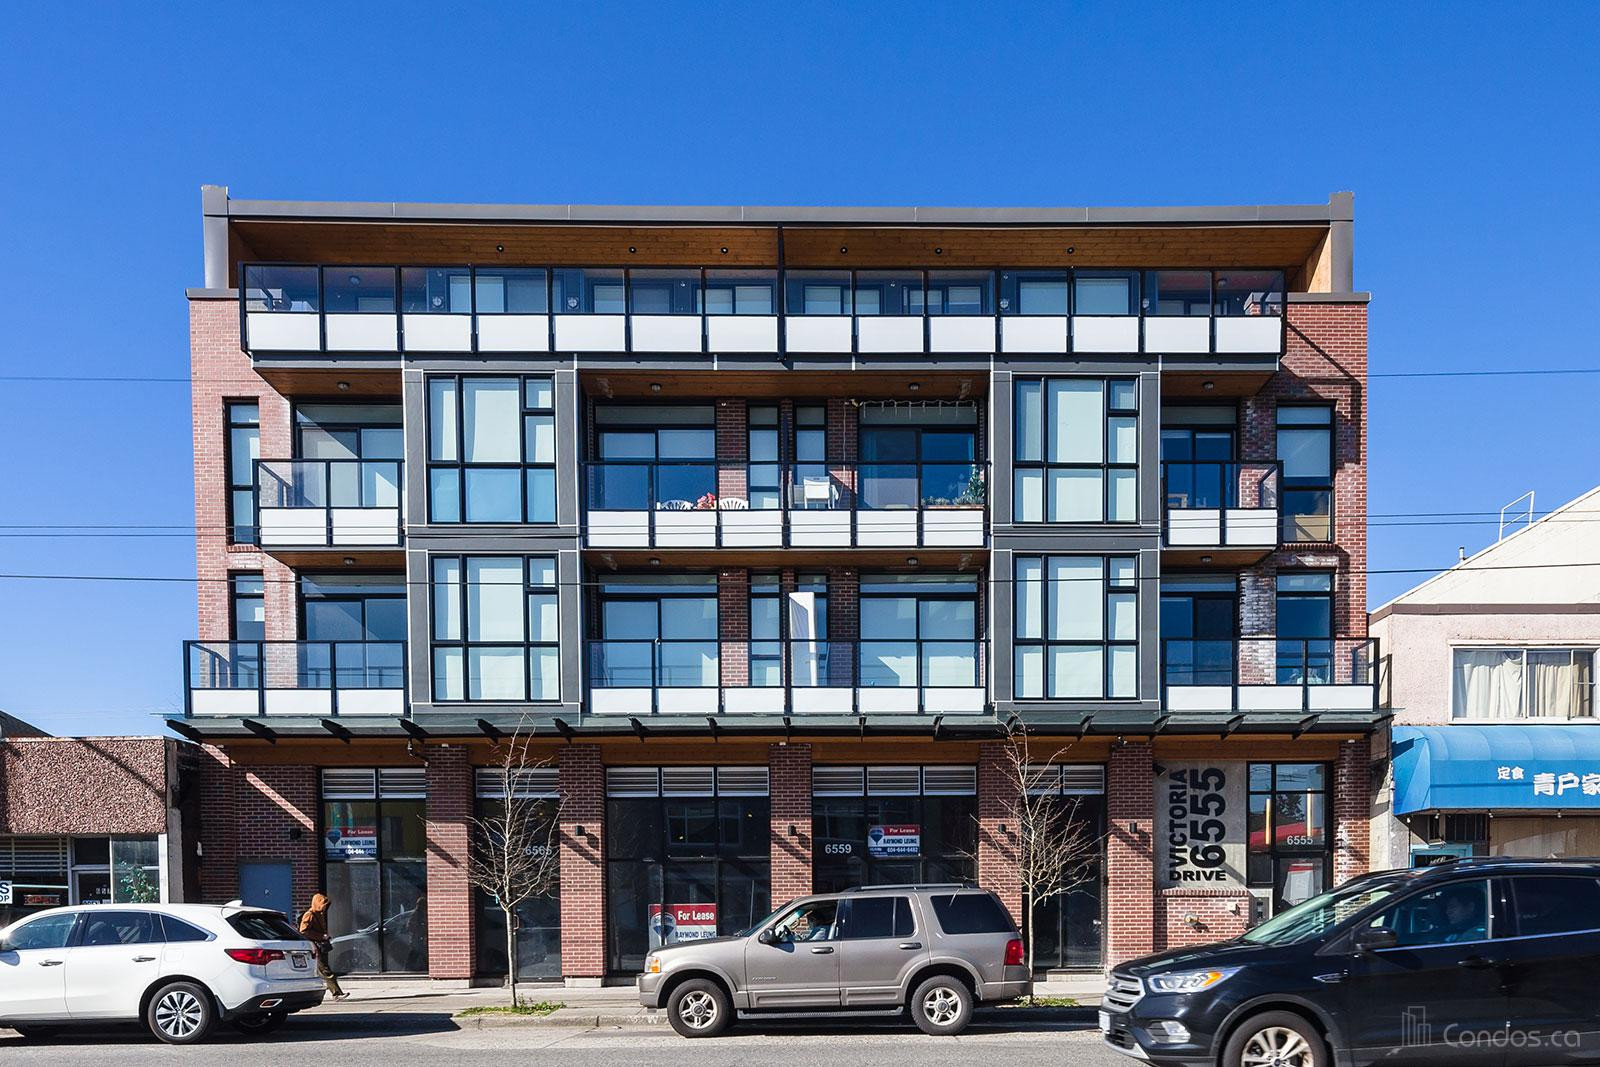 Vic49 at 6555 Victoria Dr, Vancouver 0